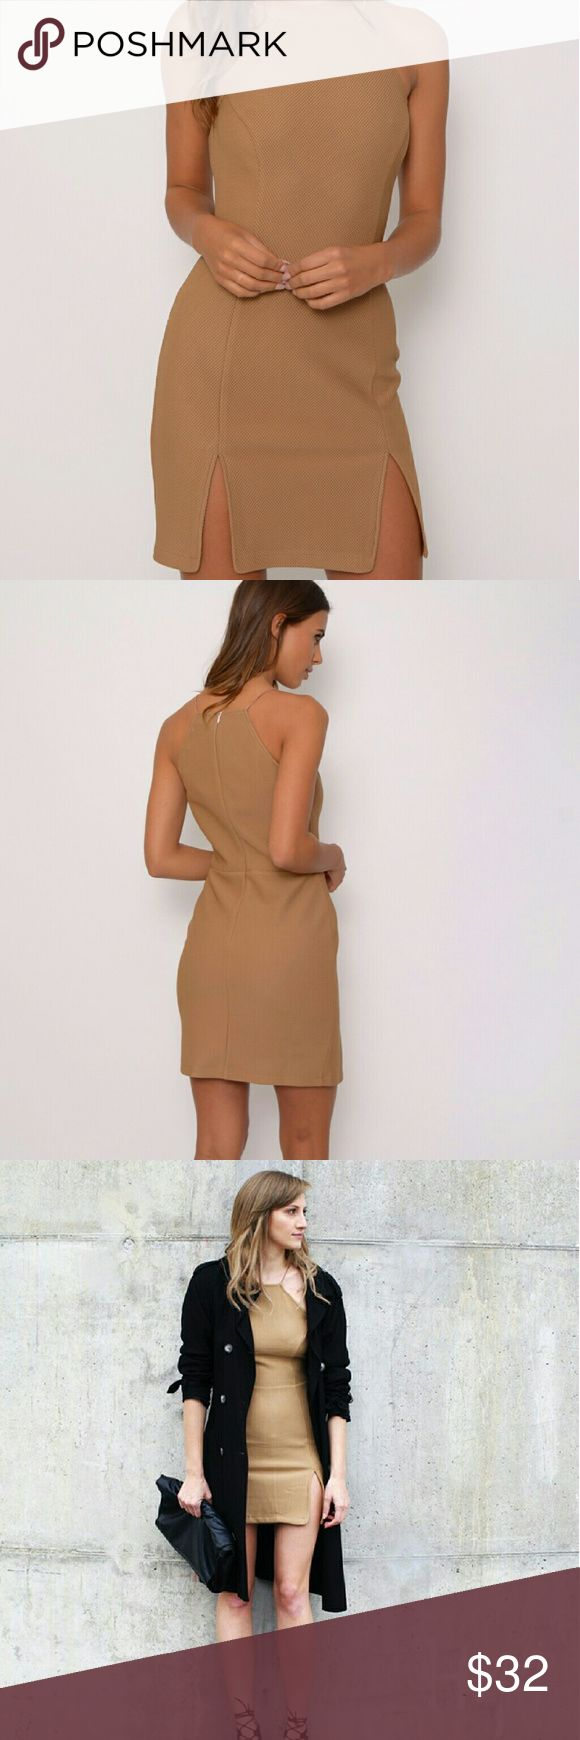 Camel Mini Dress A gorgeous re-vamped camel bodycon dress for the new season, with double front split detail. Perfect to wear with high heels, cream clutch bag and add a statement necklace for that extra glam touch. Dresses Mini